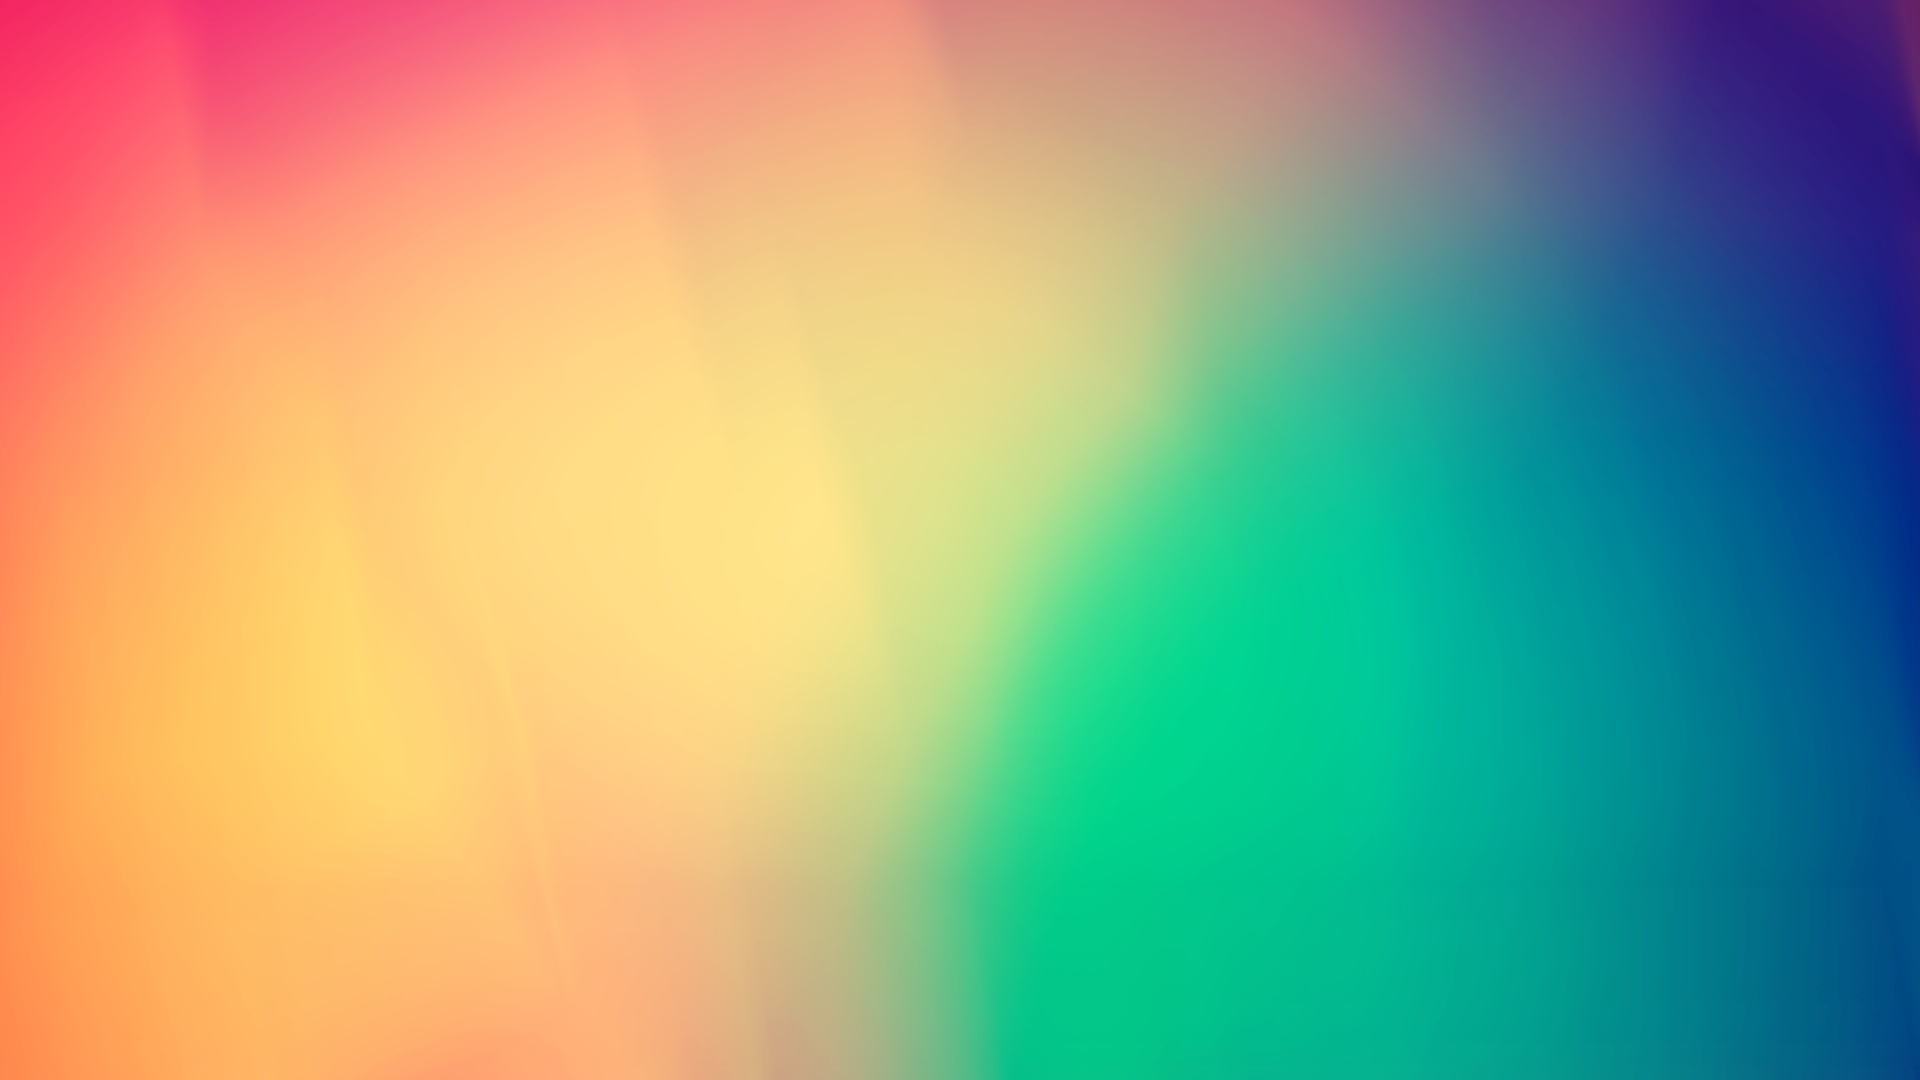 Colors hd simple solid plain abstract. HD Wallpaper